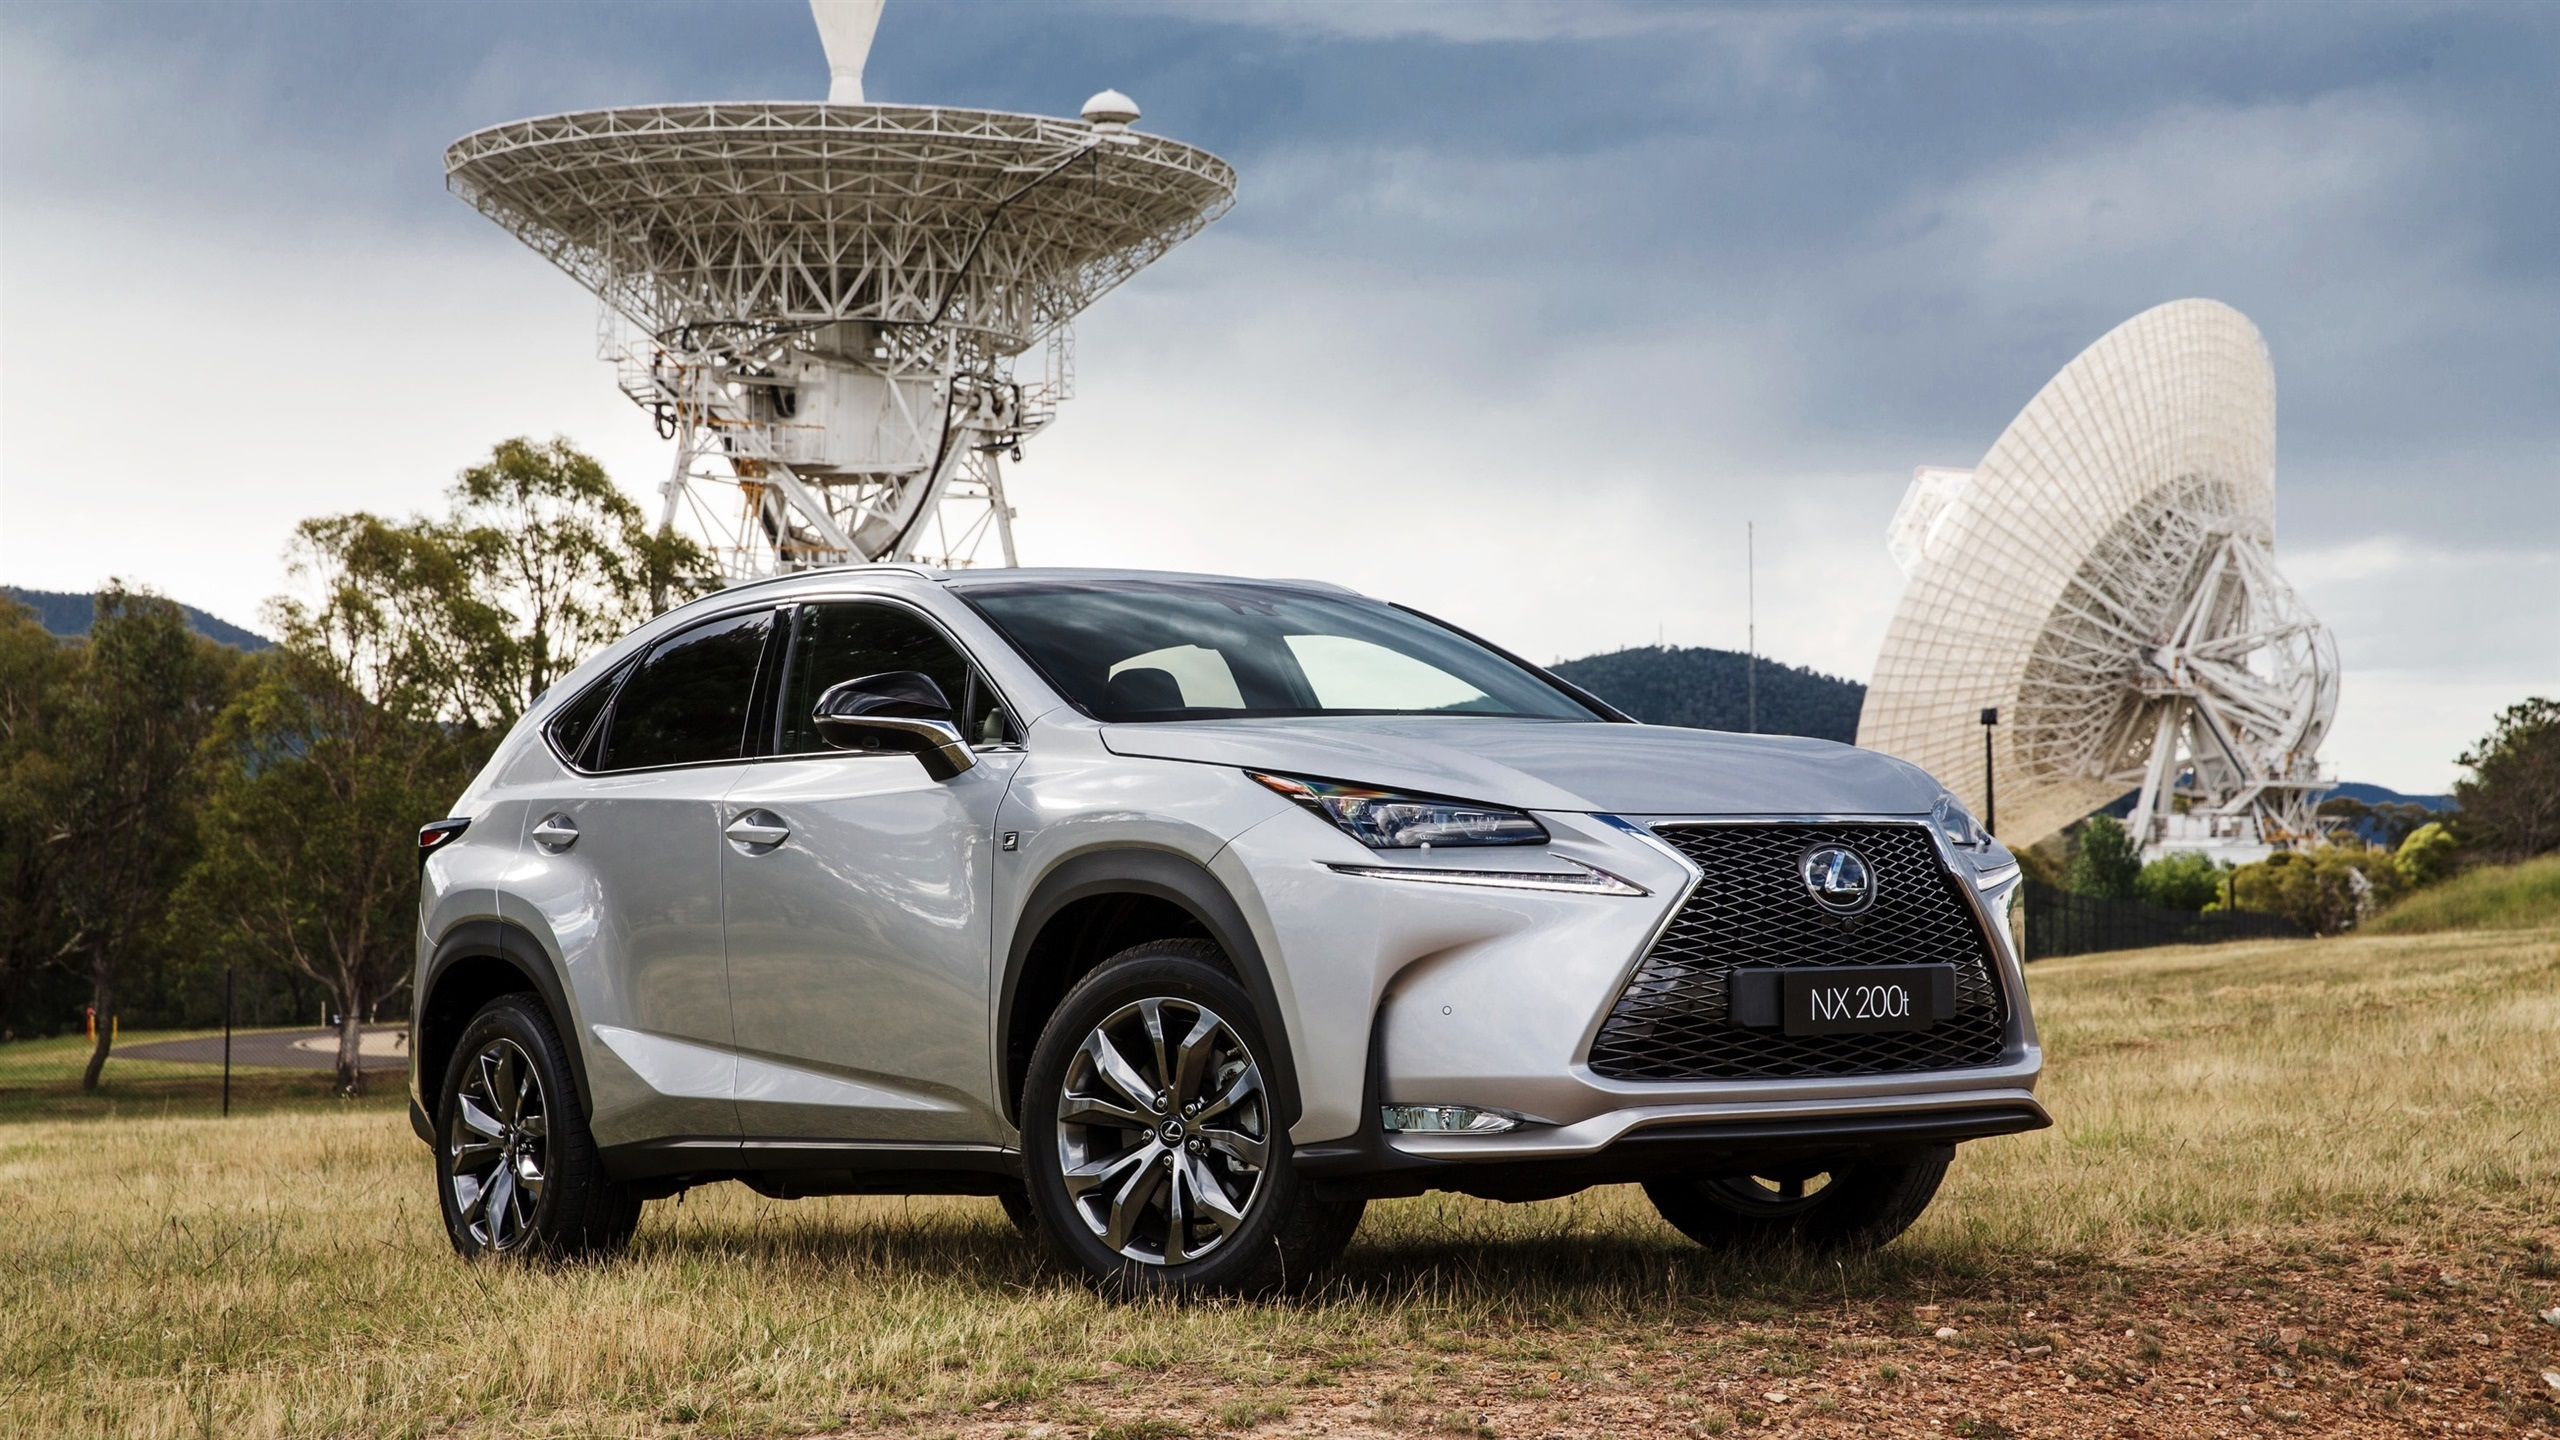 Lexus NX 200t silver car Wallpaper 2560x1440 resolution wallpaper 2560x1440